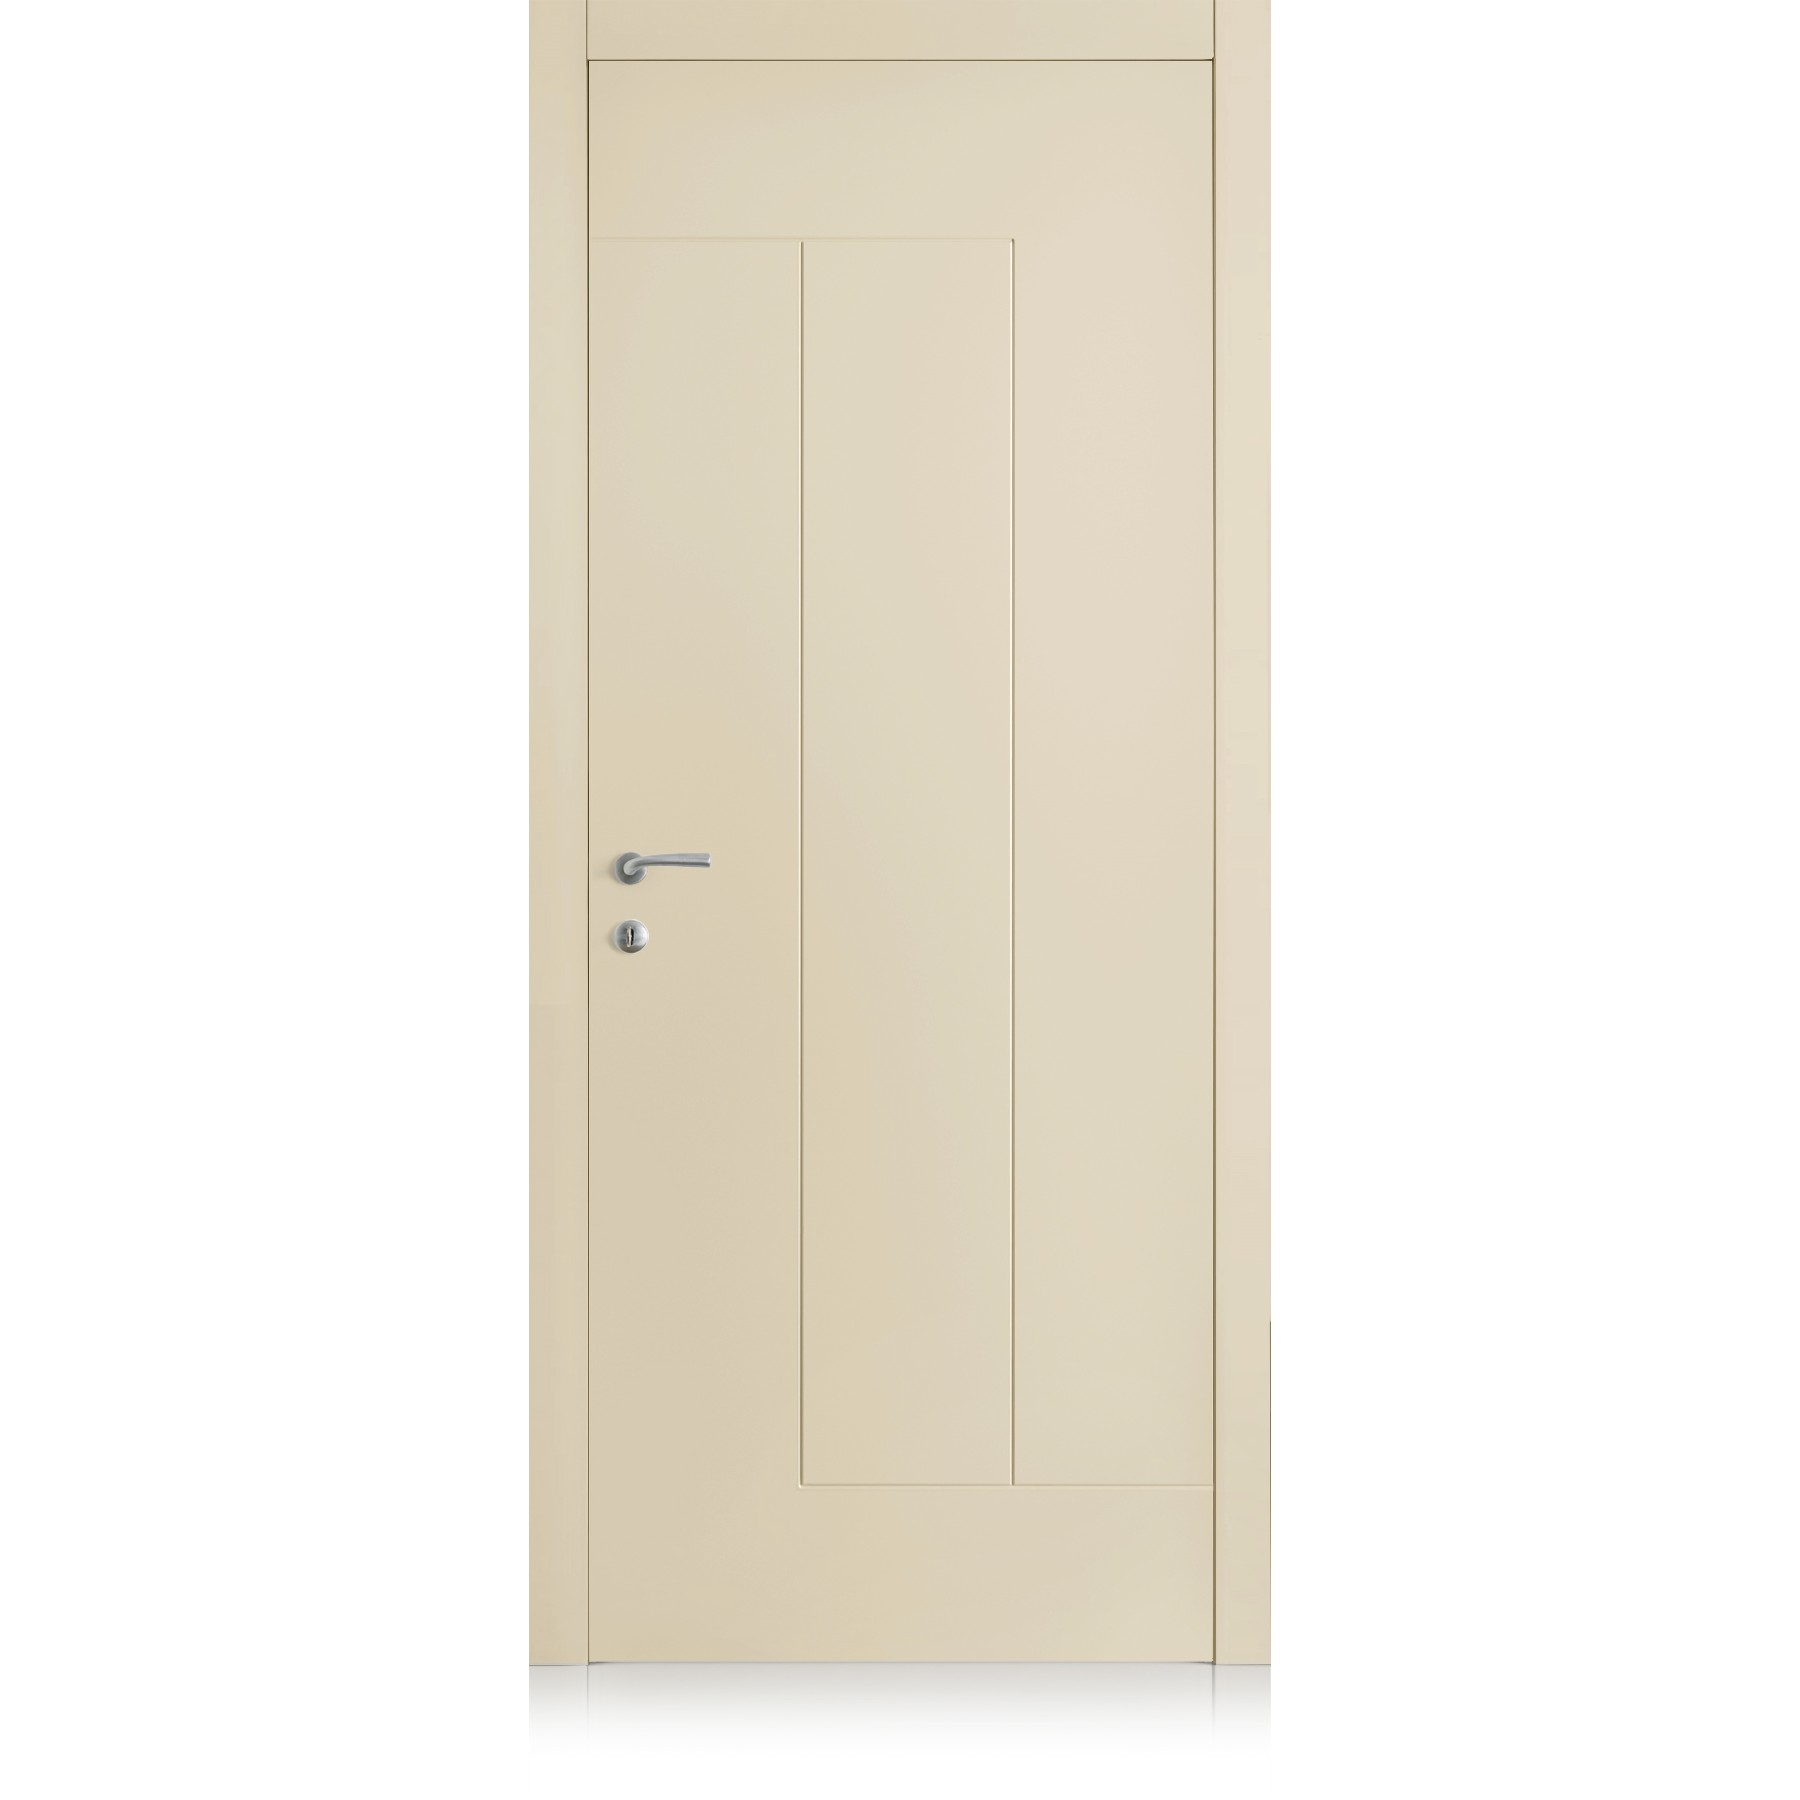 Yncisa / 8 cremy door